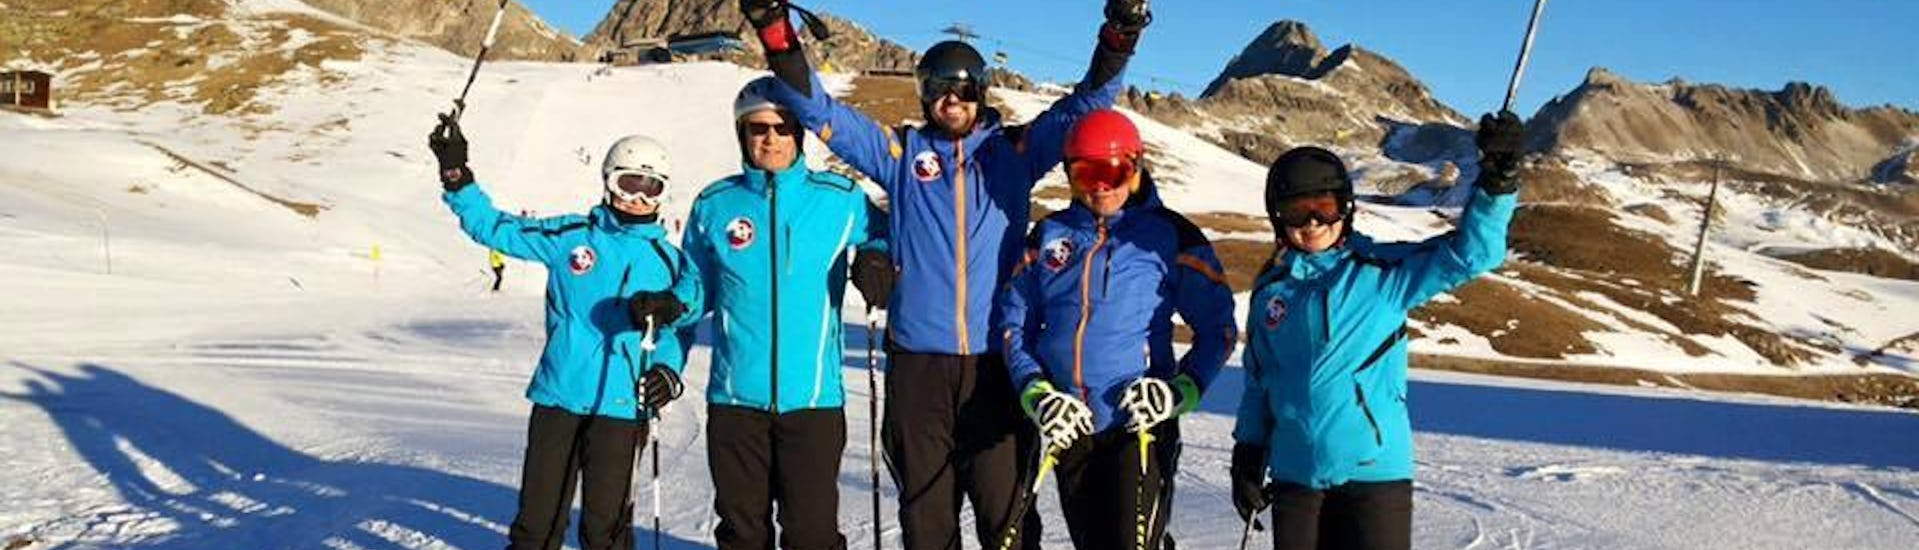 Ski Instructor Private for Adults - St.Moritz